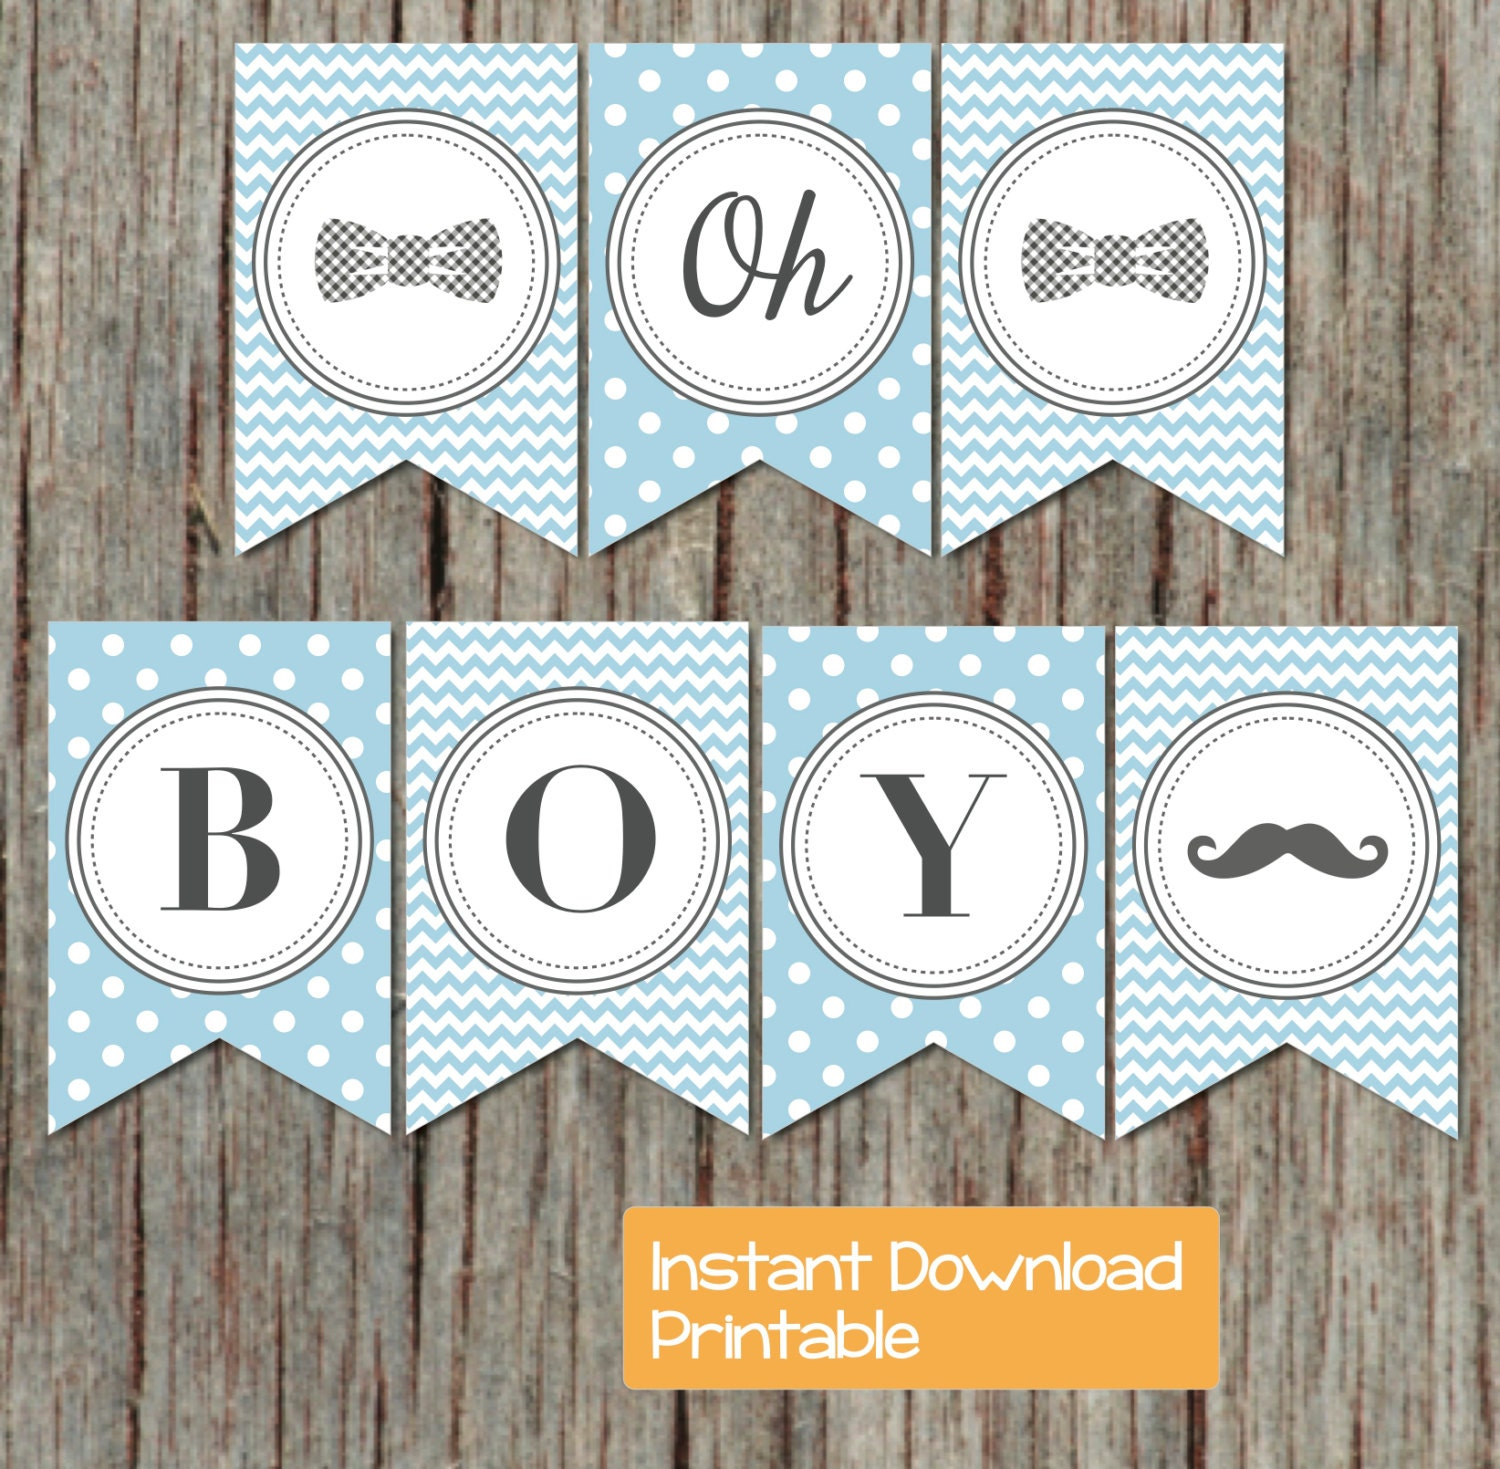 Epic image pertaining to baby shower banner printable